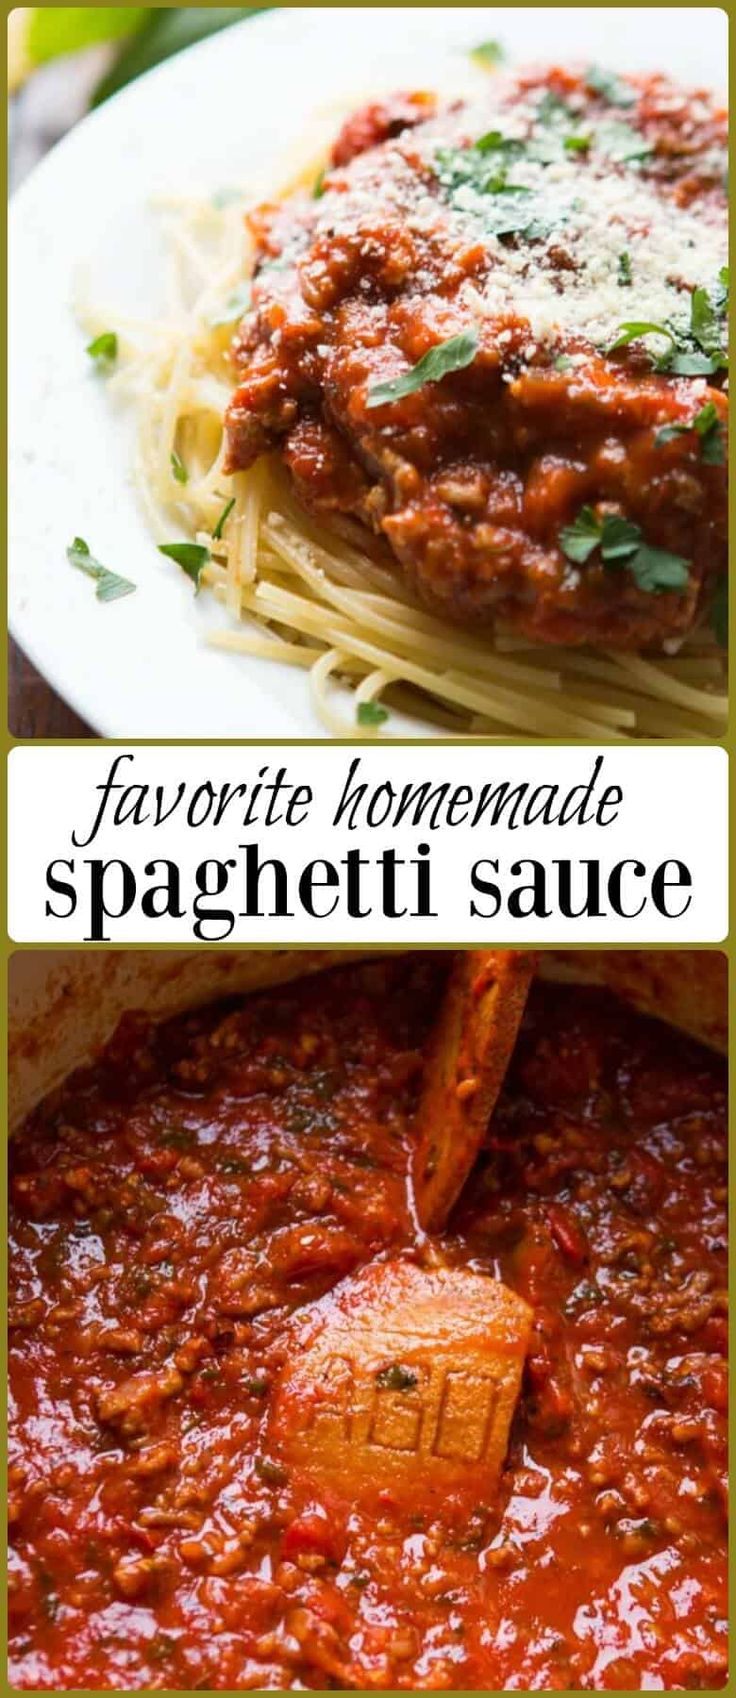 Favorite Homemade Spaghetti Sauce